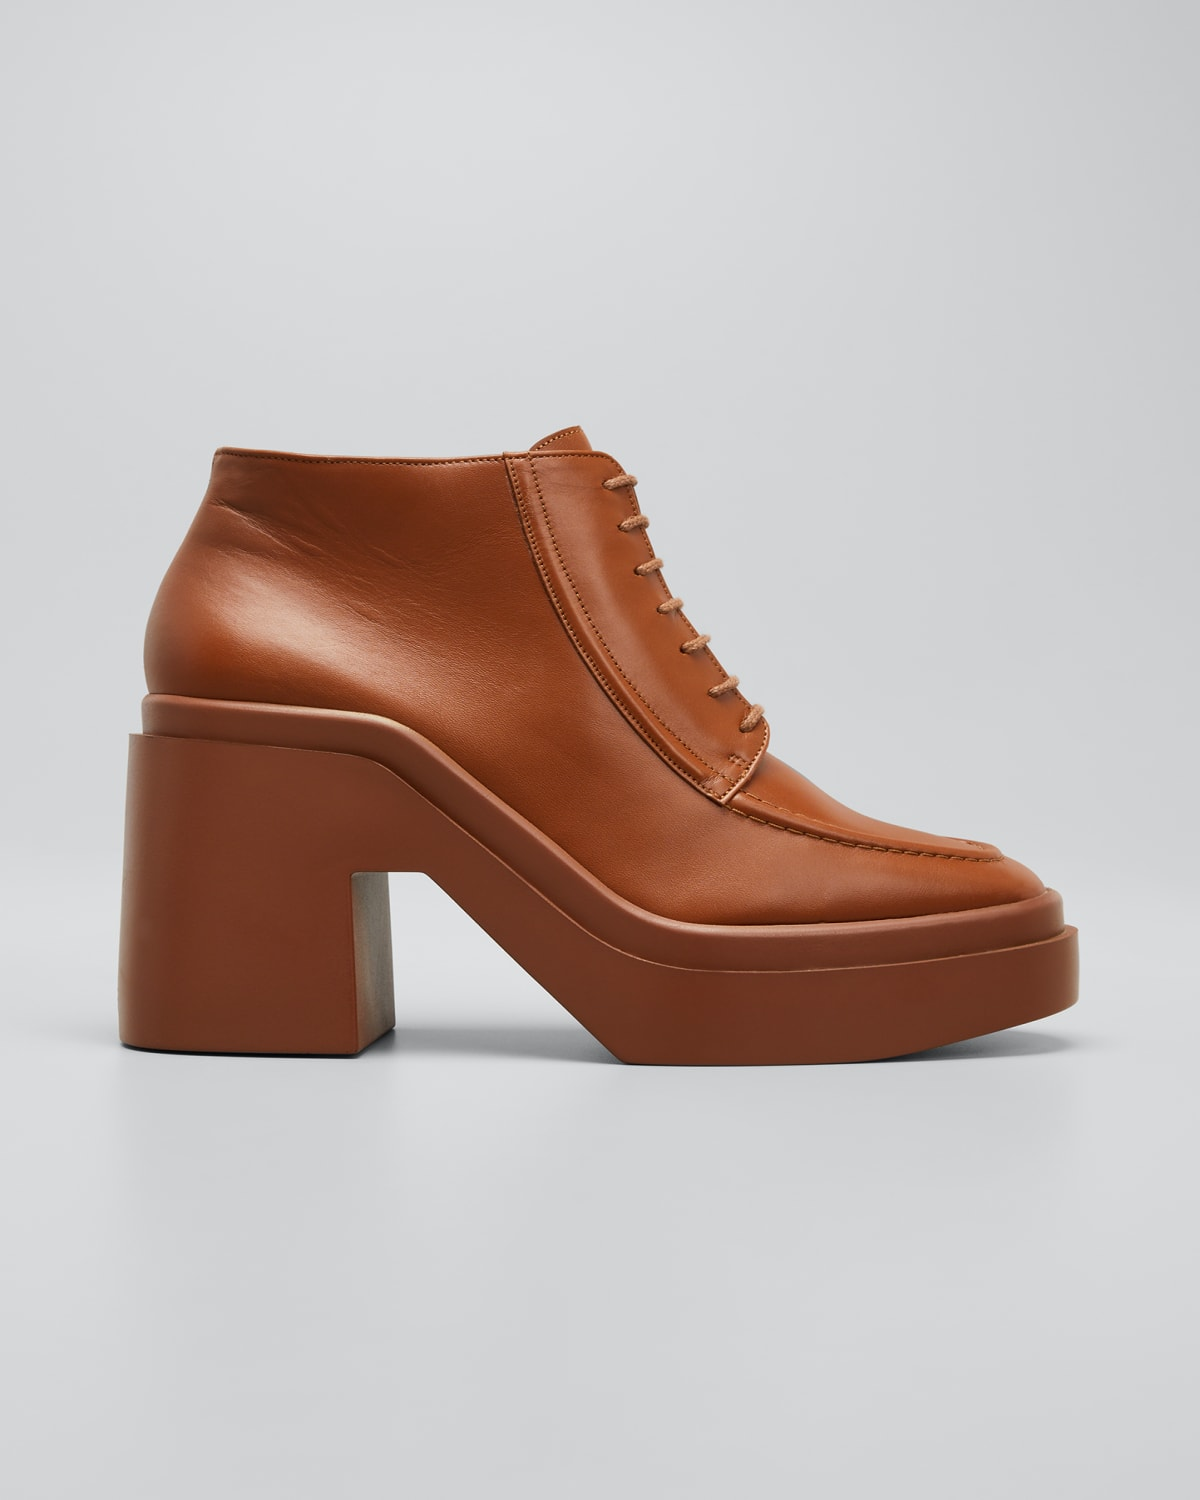 Nadia Leather Lace-Up Loafer Booties